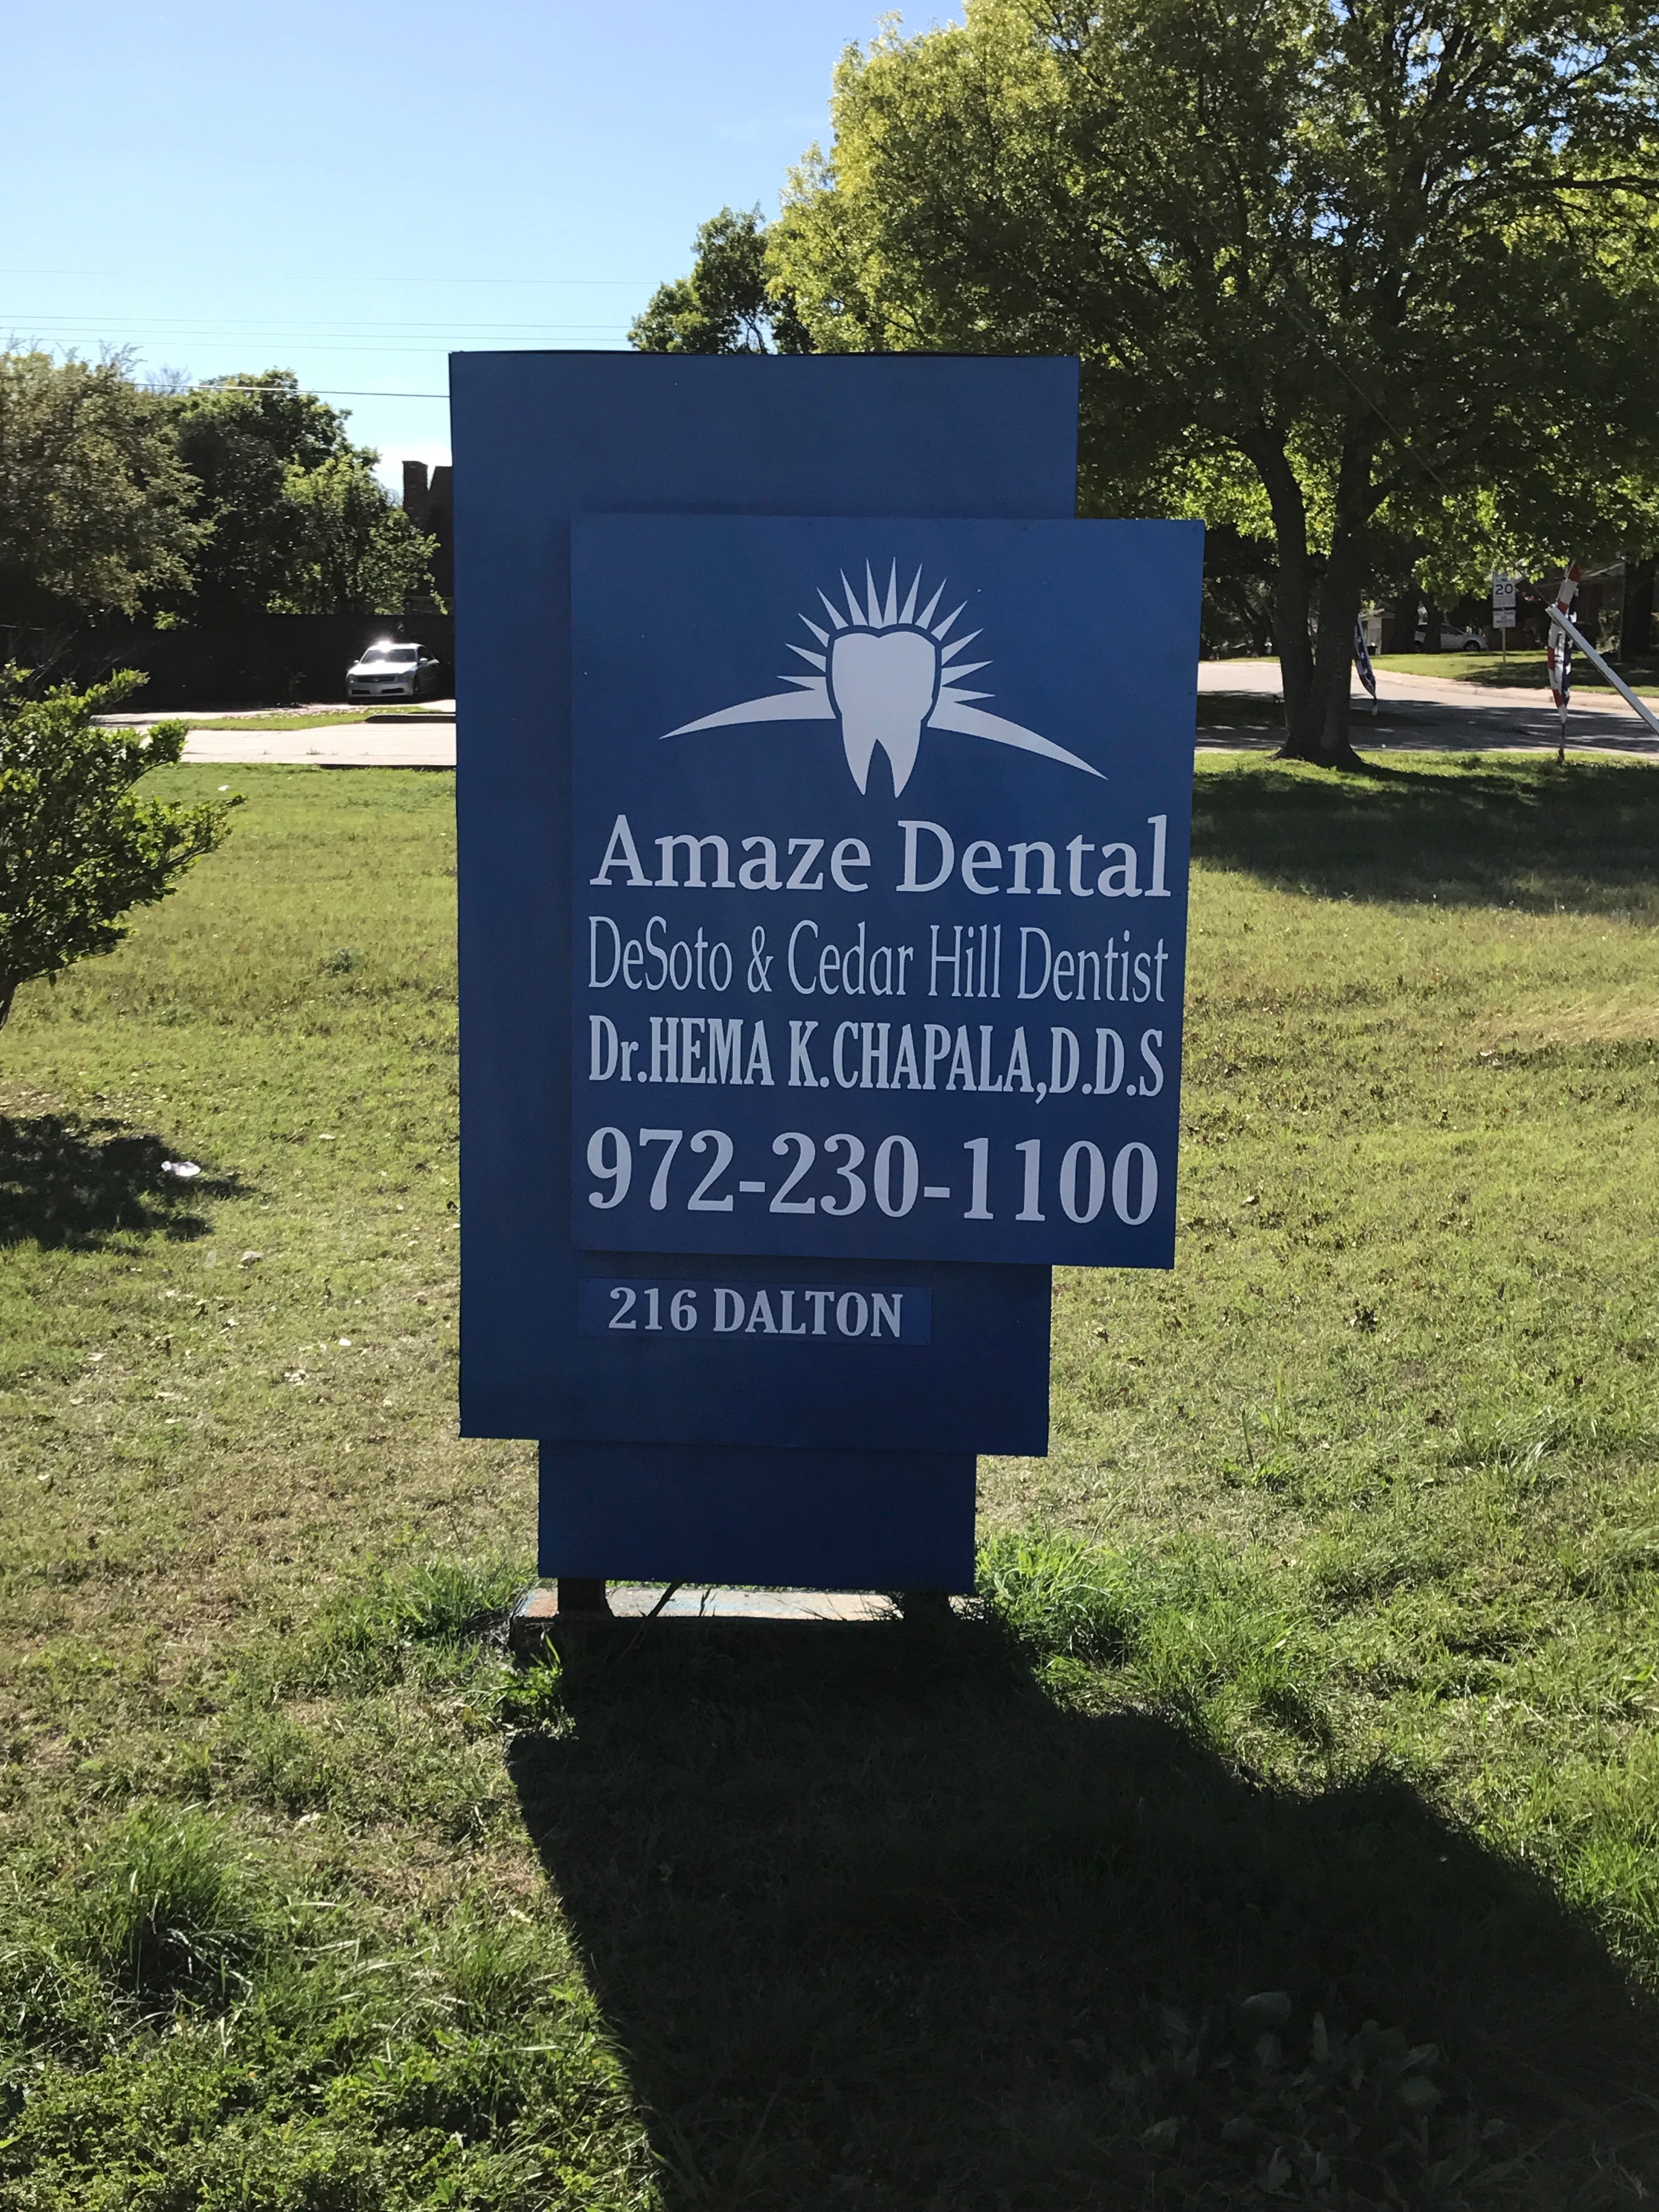 Dentists in Desoto, TX  Desoto Texas Dentists  iBegin